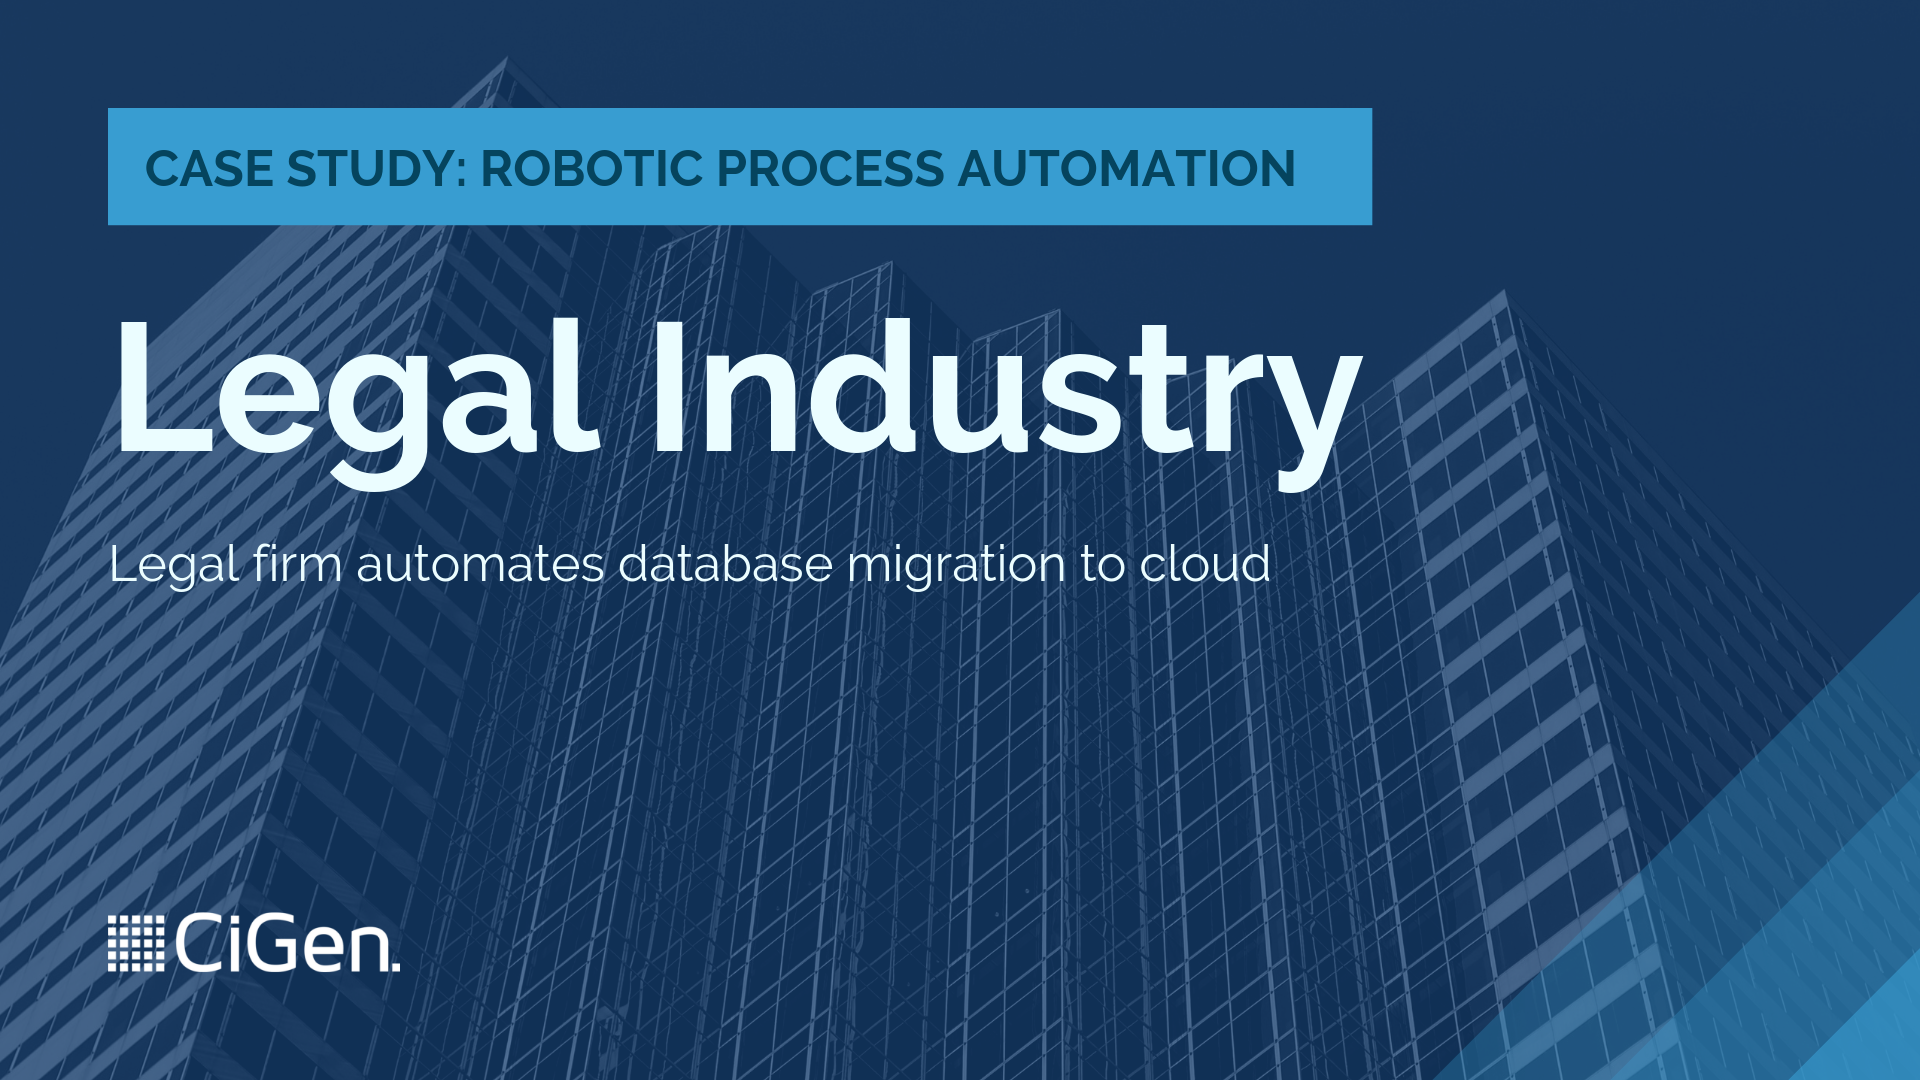 CiGen-robotic-process-automation-RPA-Australia-case-study-legal-firm-automates-database-migration-to-cloud-1.png